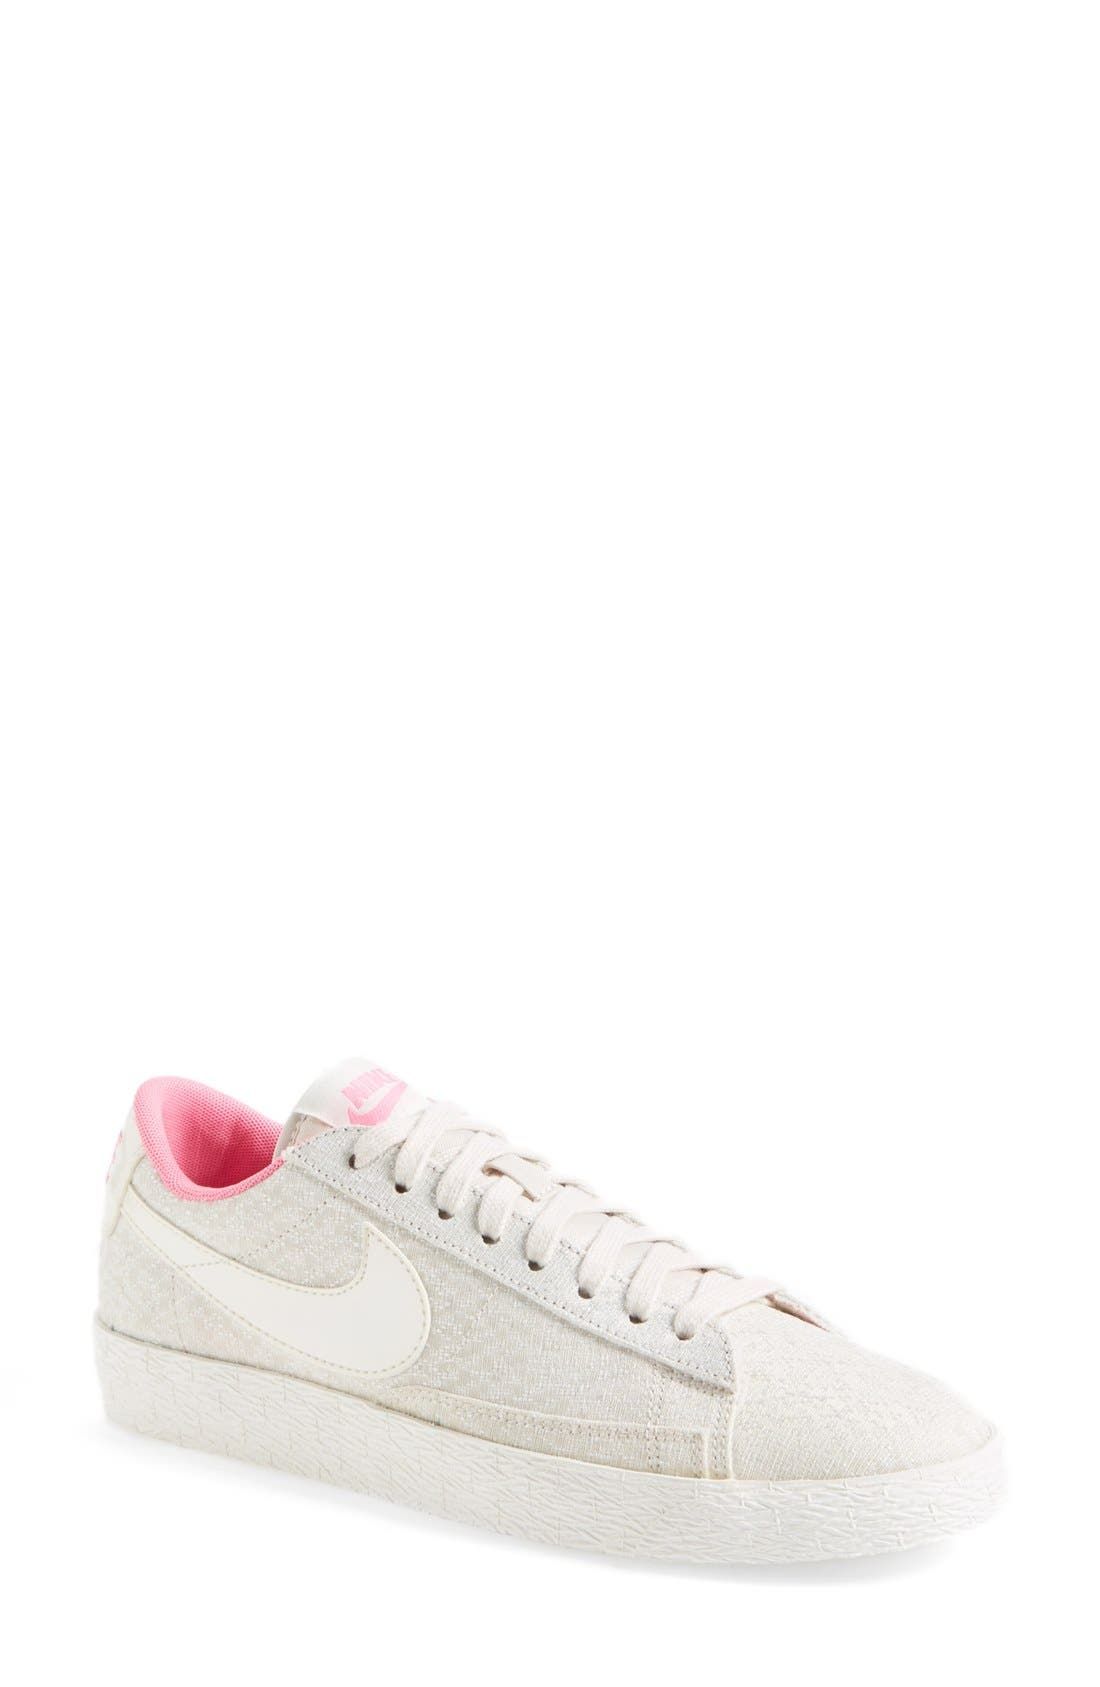 Alternate Image 1 Selected - Nike 'Blazer' Low-Top Sneaker (Women)